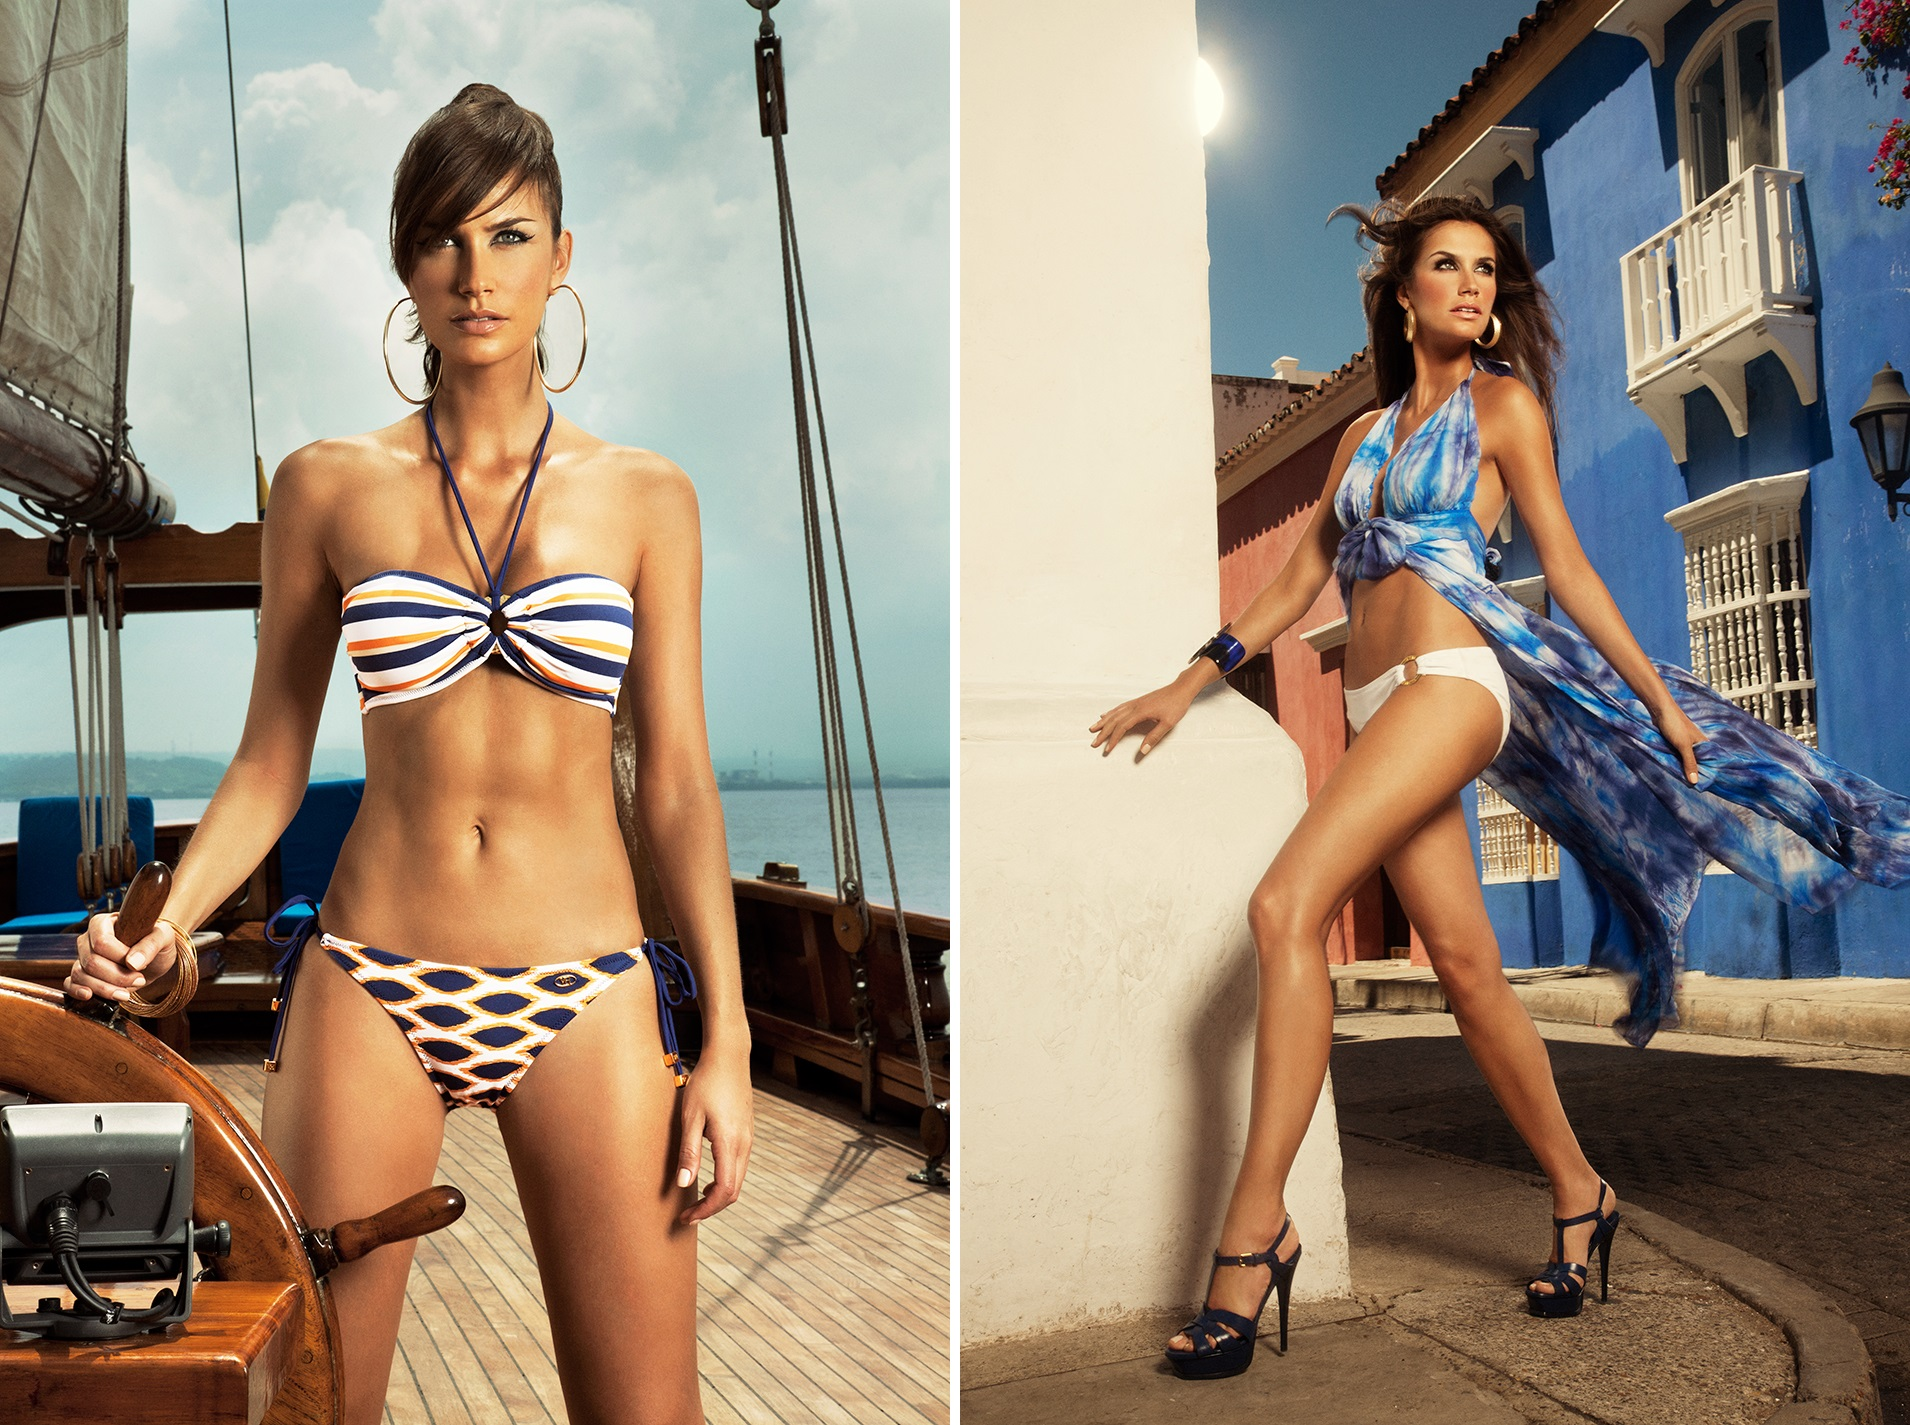 Left: Isabella Mixed Bikini Right: Santorini Cover Up Images courtesy of Verano High